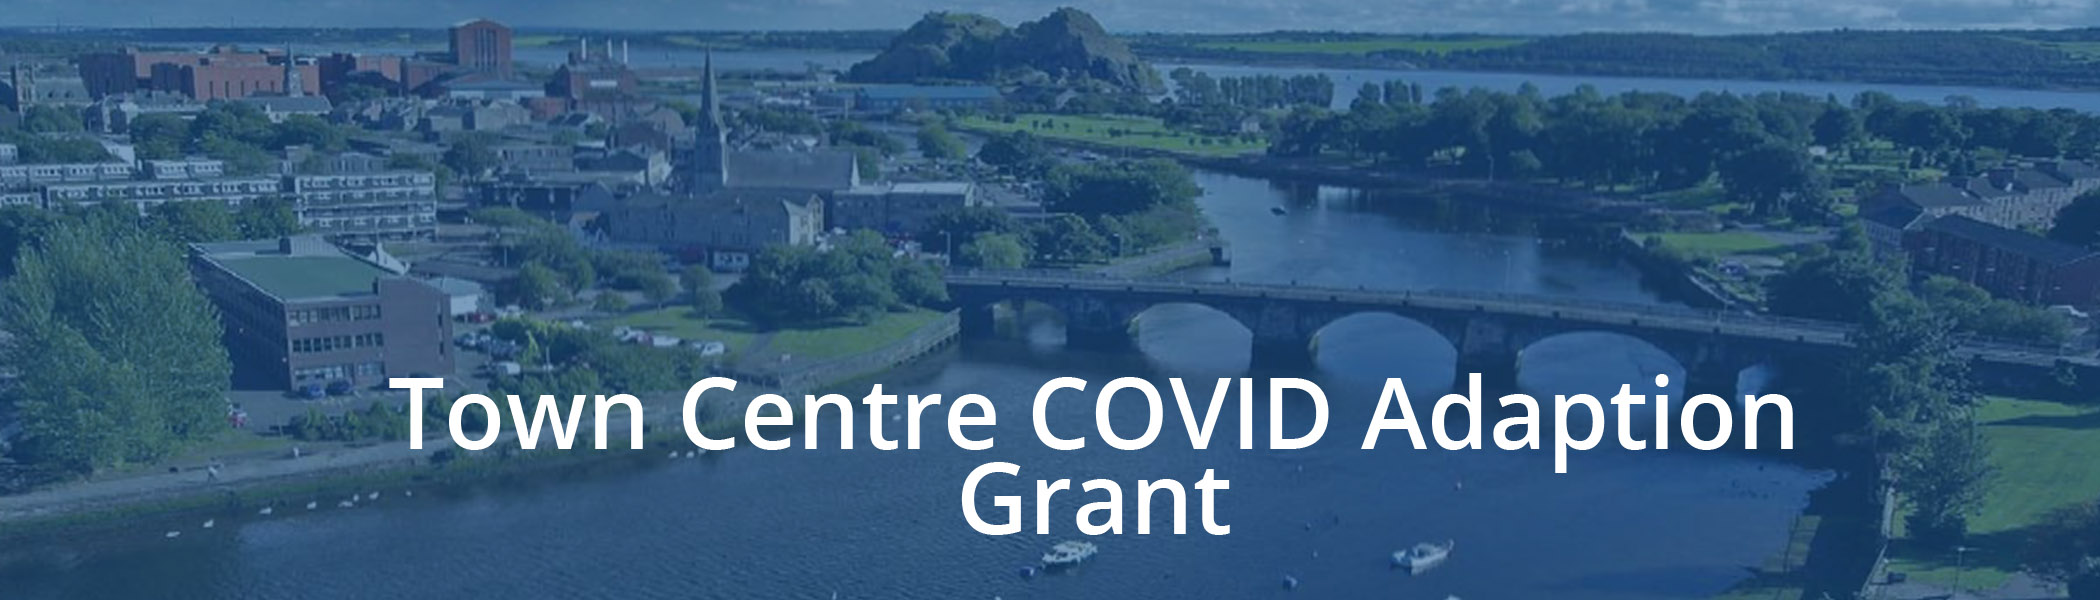 Town Centre COVID Adaption Grant